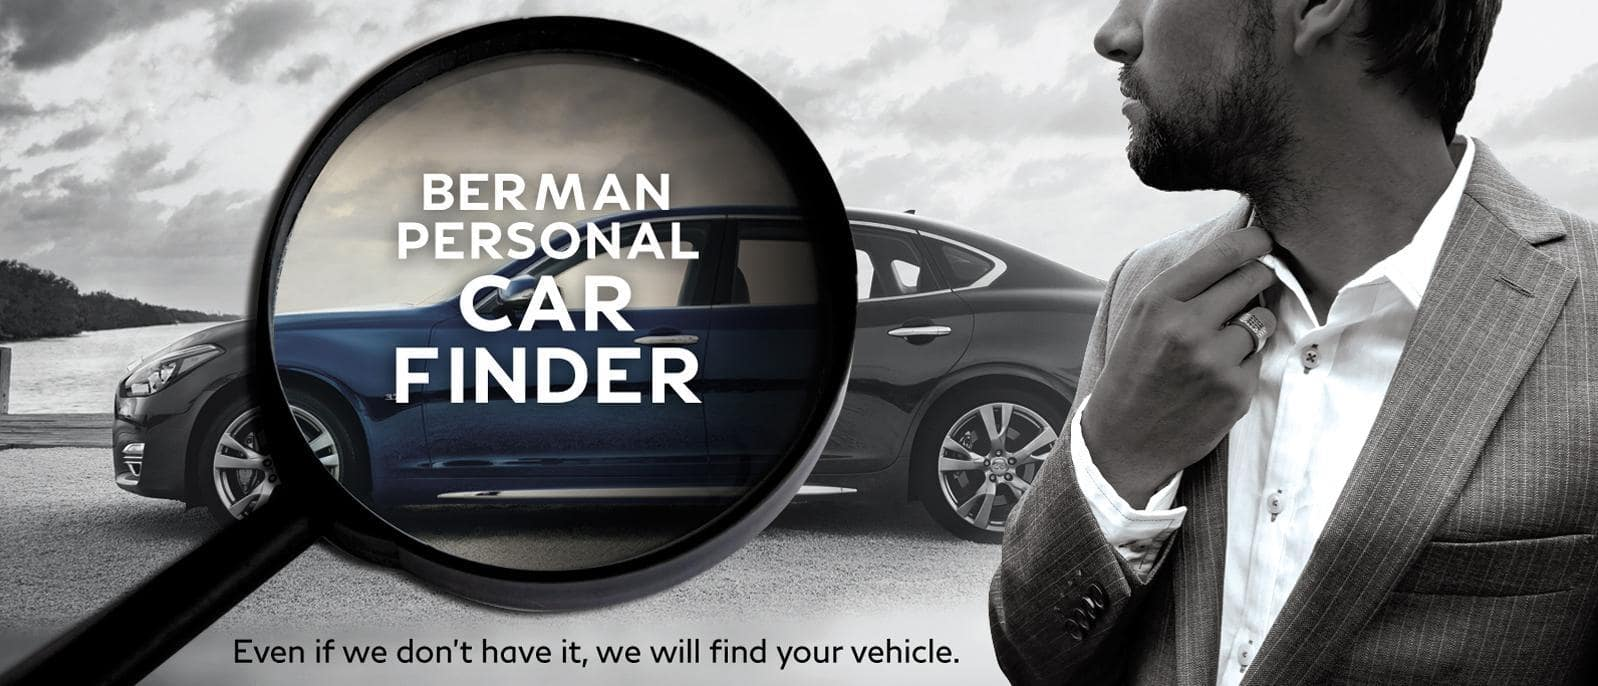 Berman Personal Car Finder Program at Berman INFINITI of Merrillville